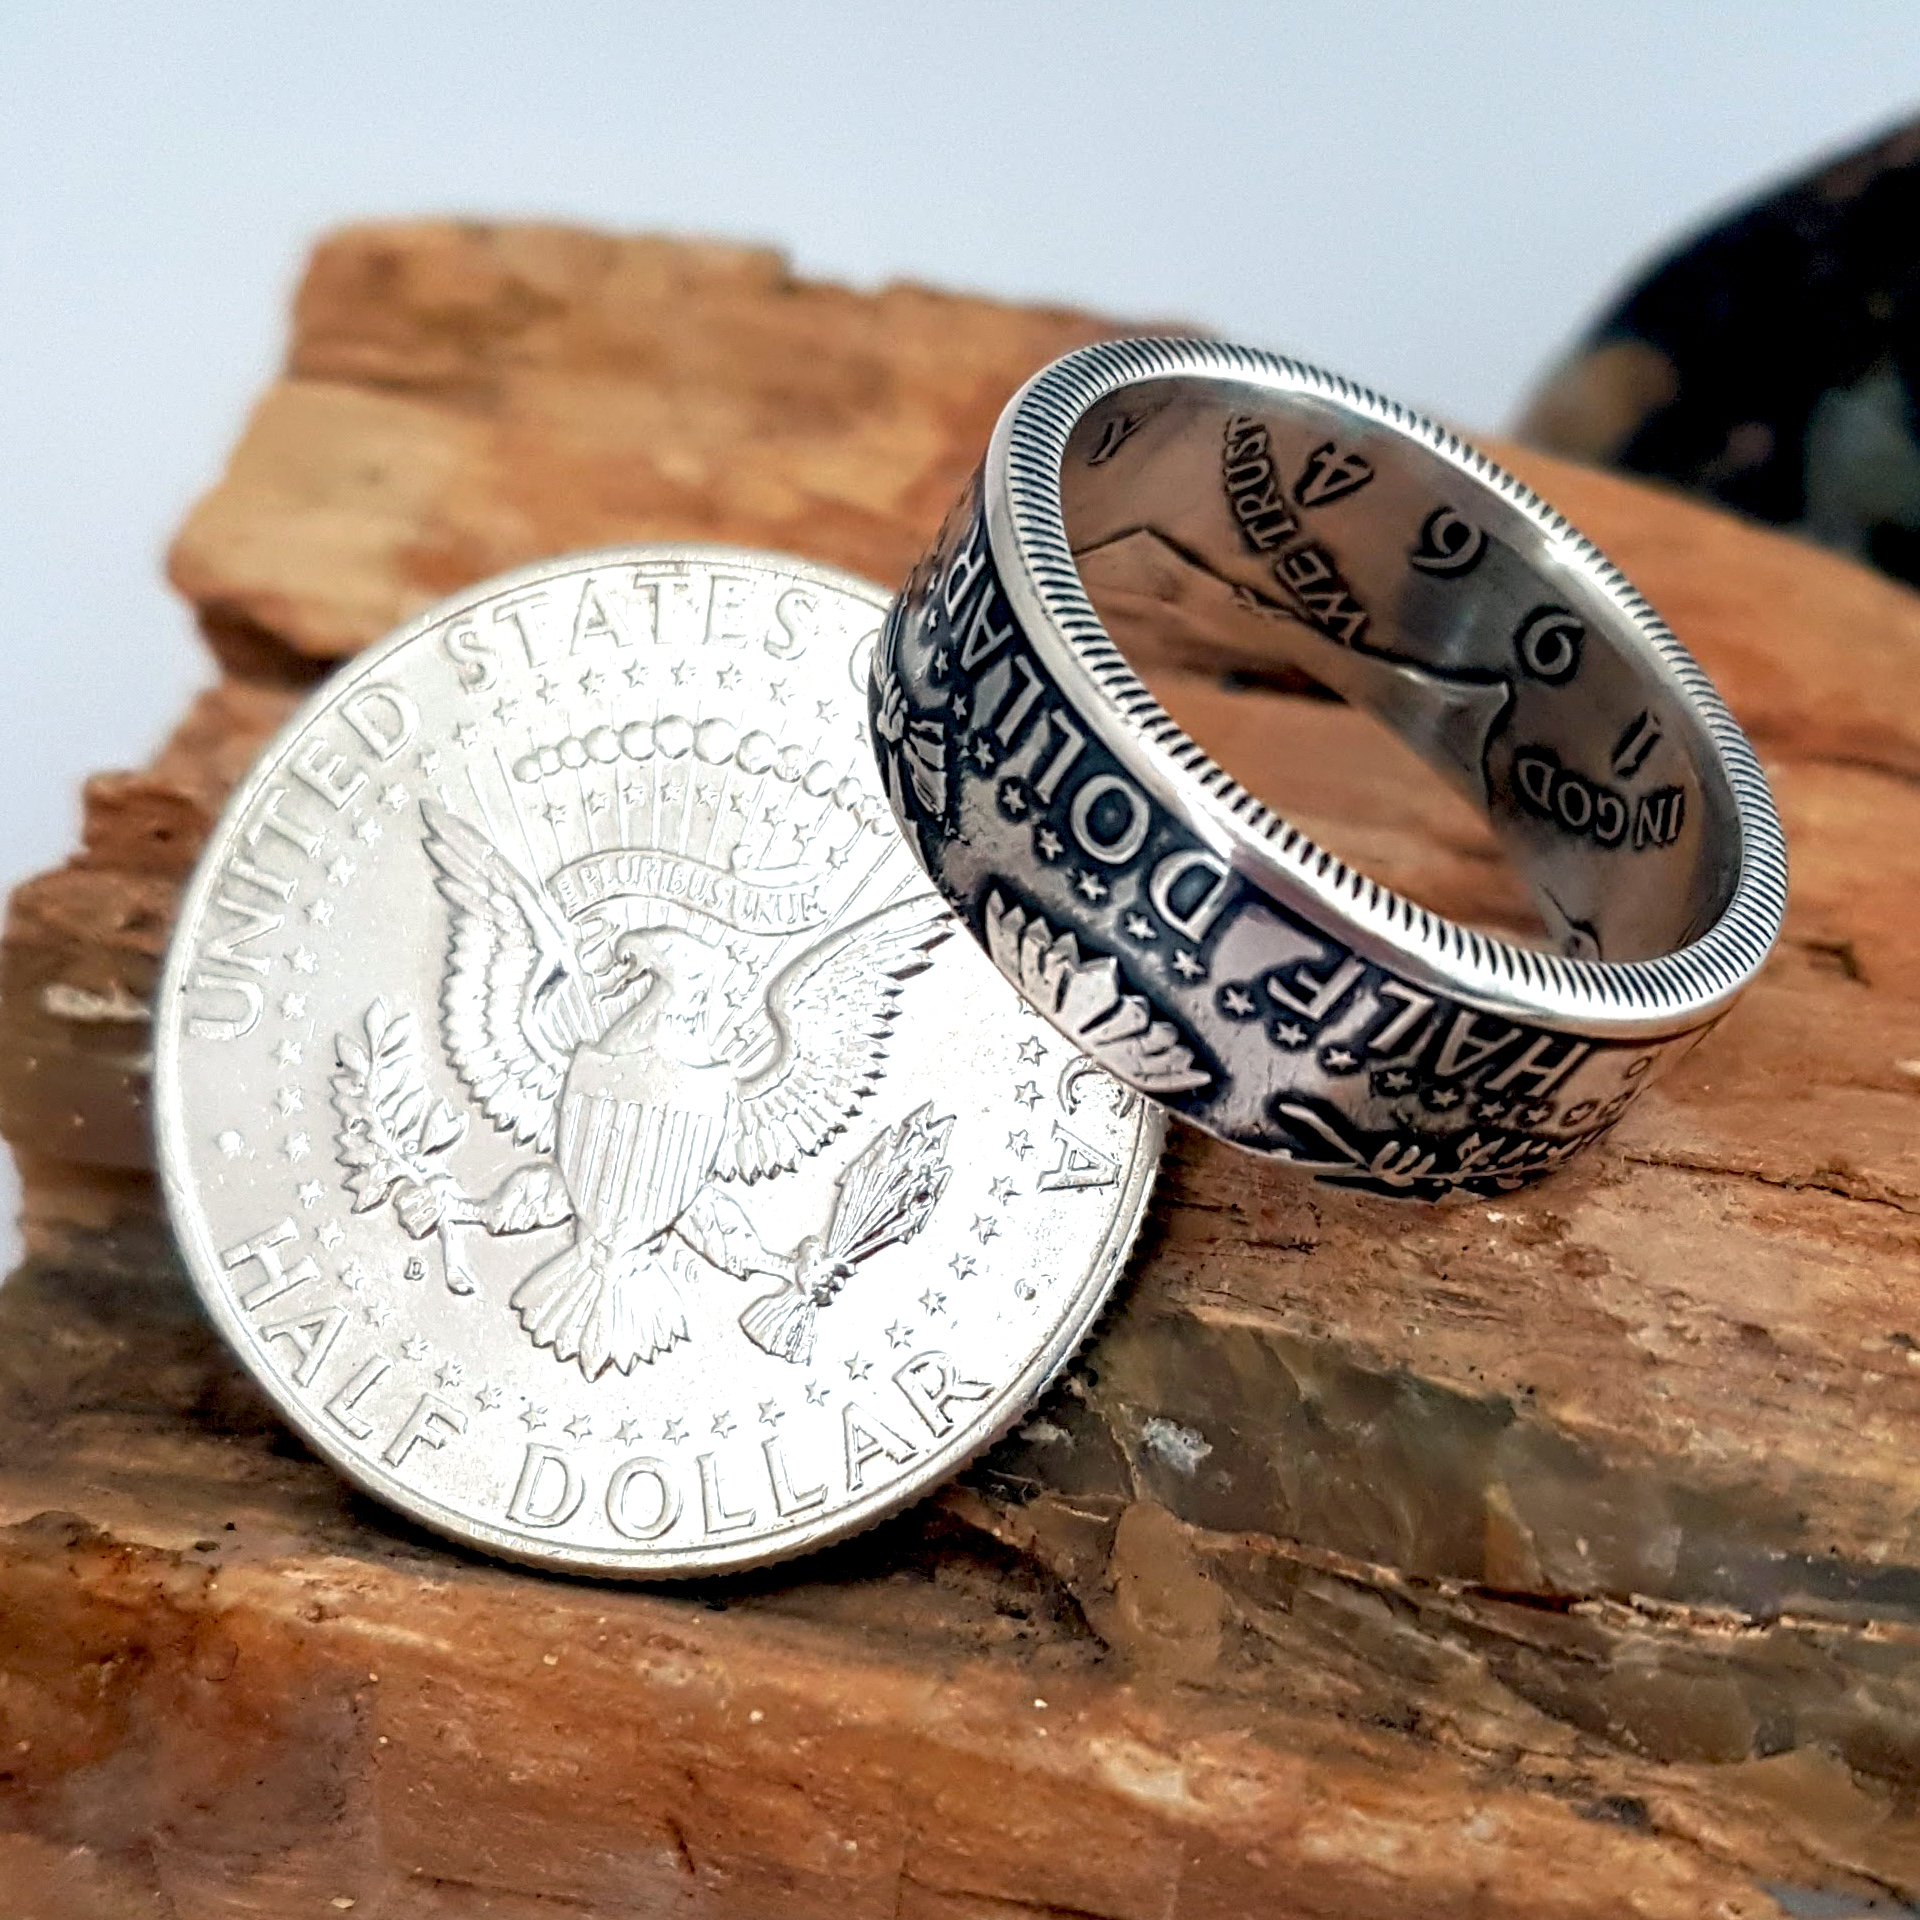 A US coin made into a ring by Celtic Coin Crafts